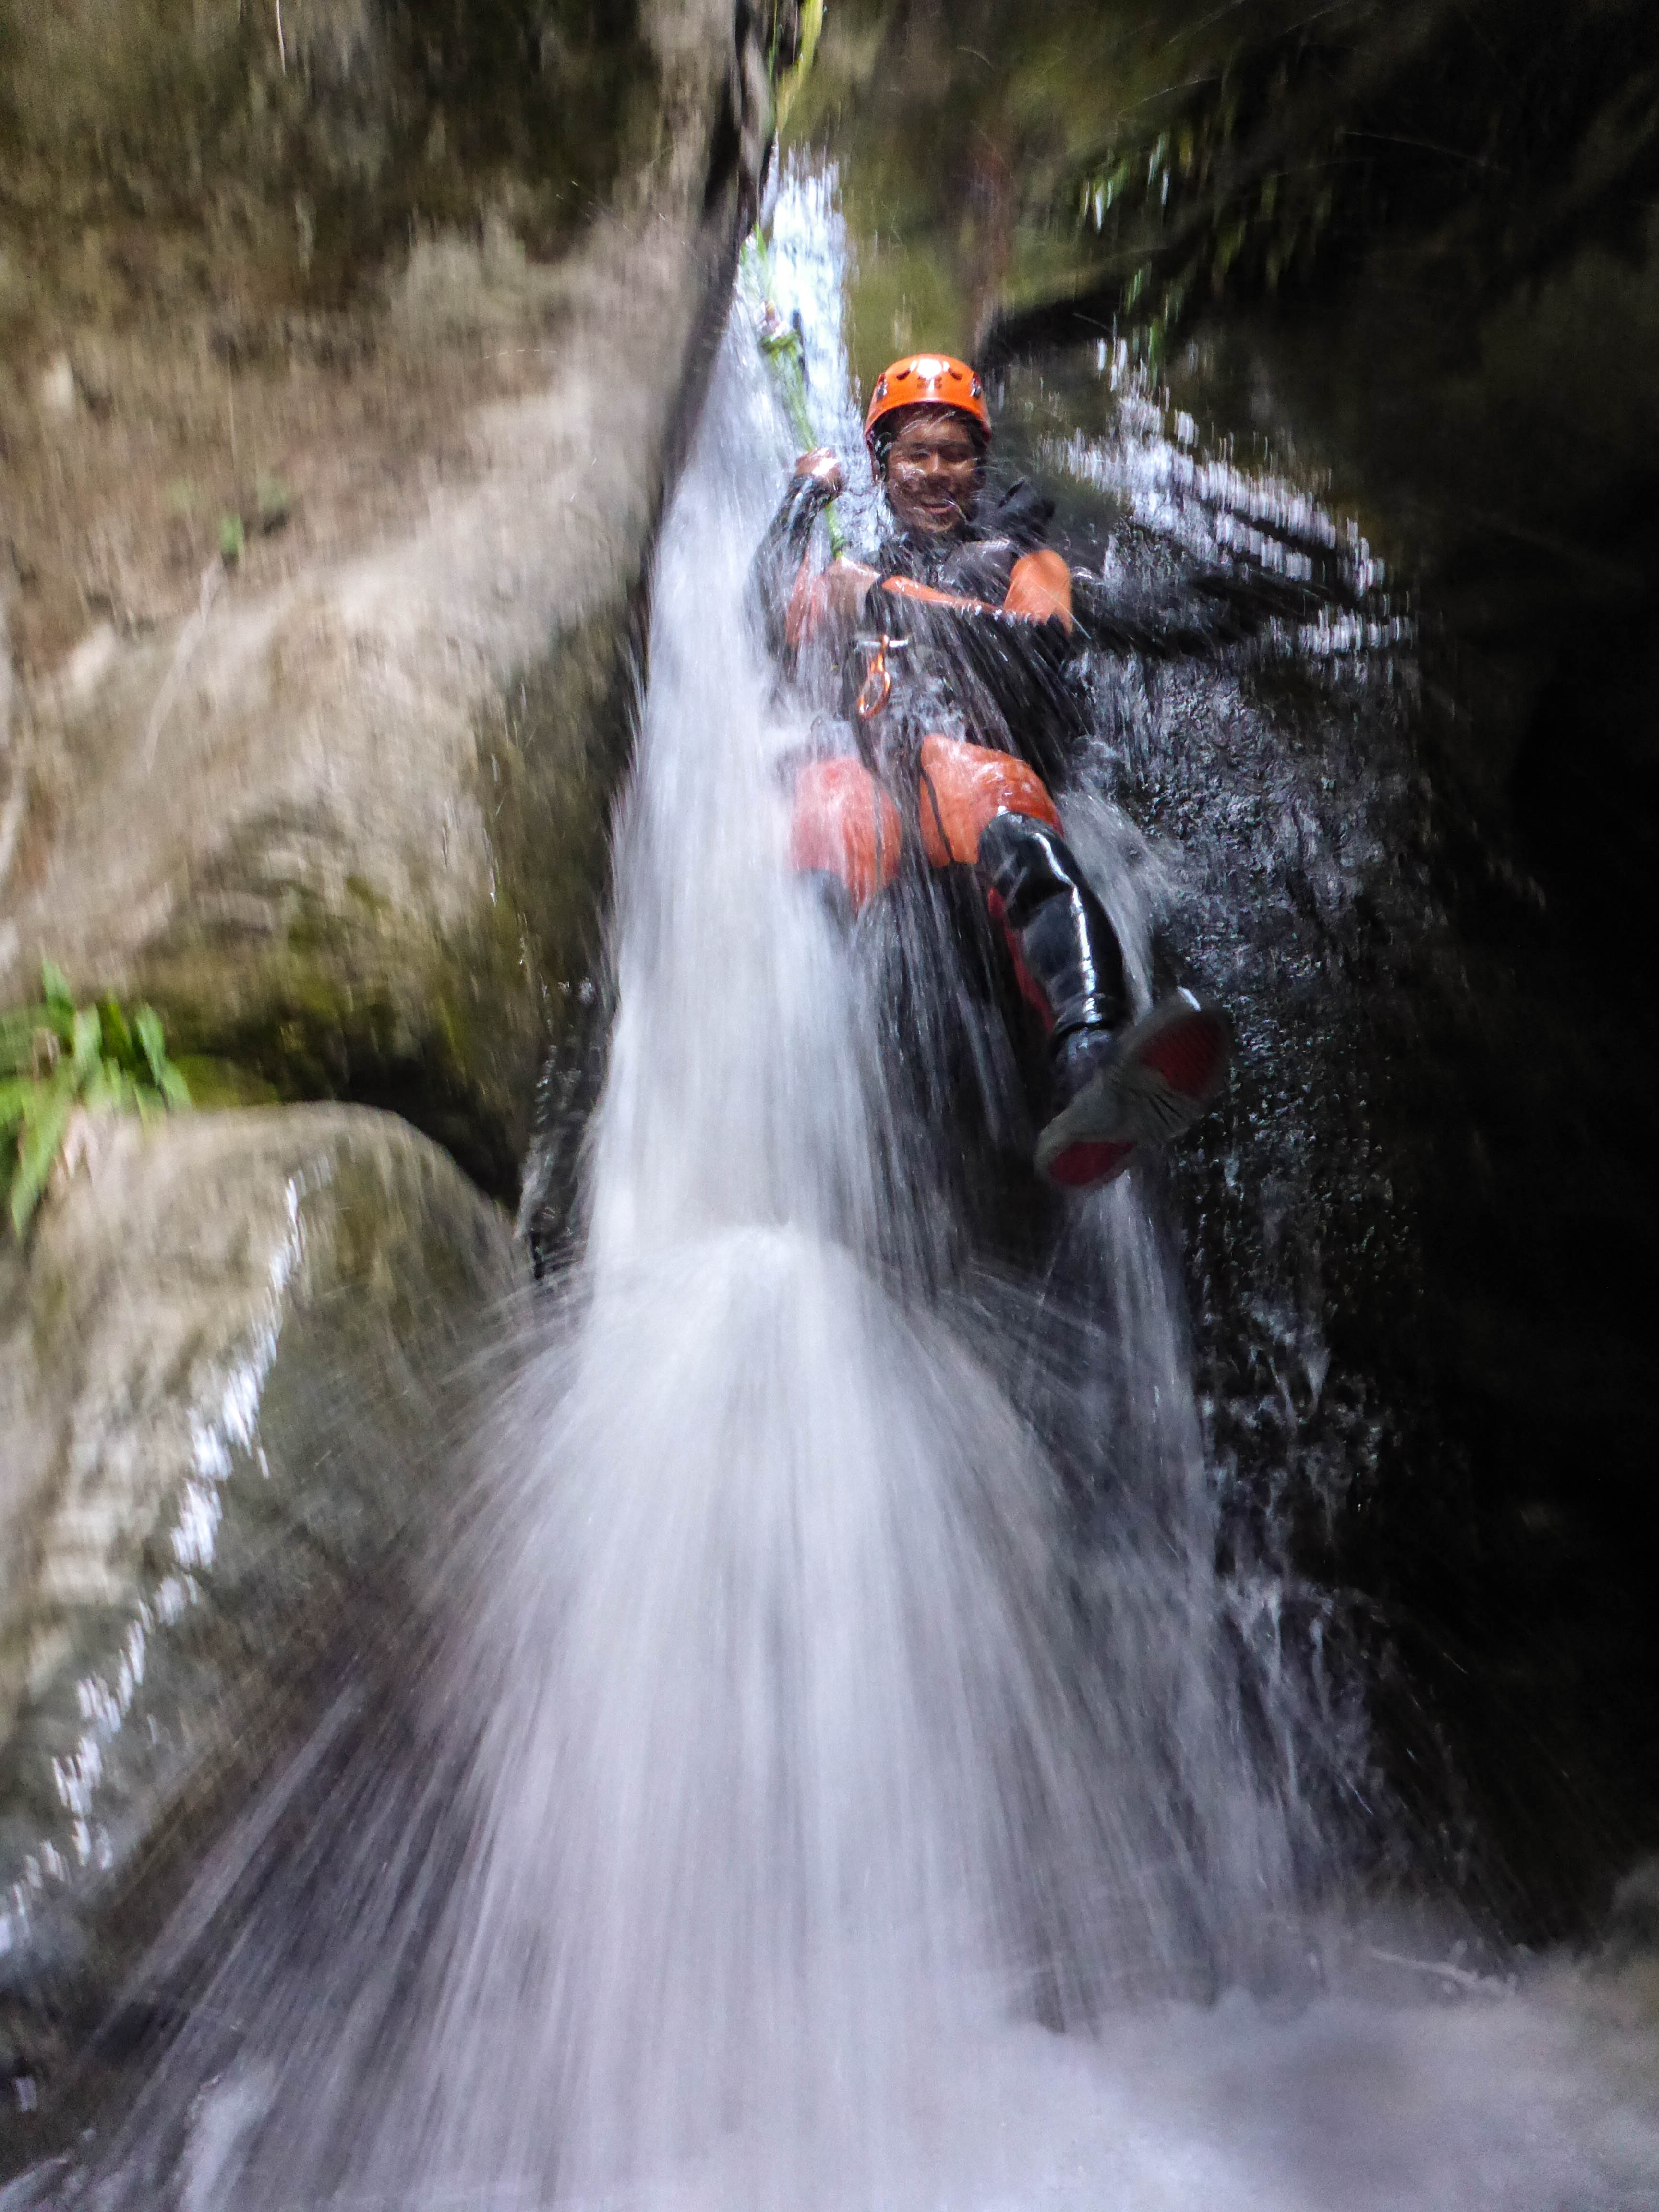 Sliding down the waterfall